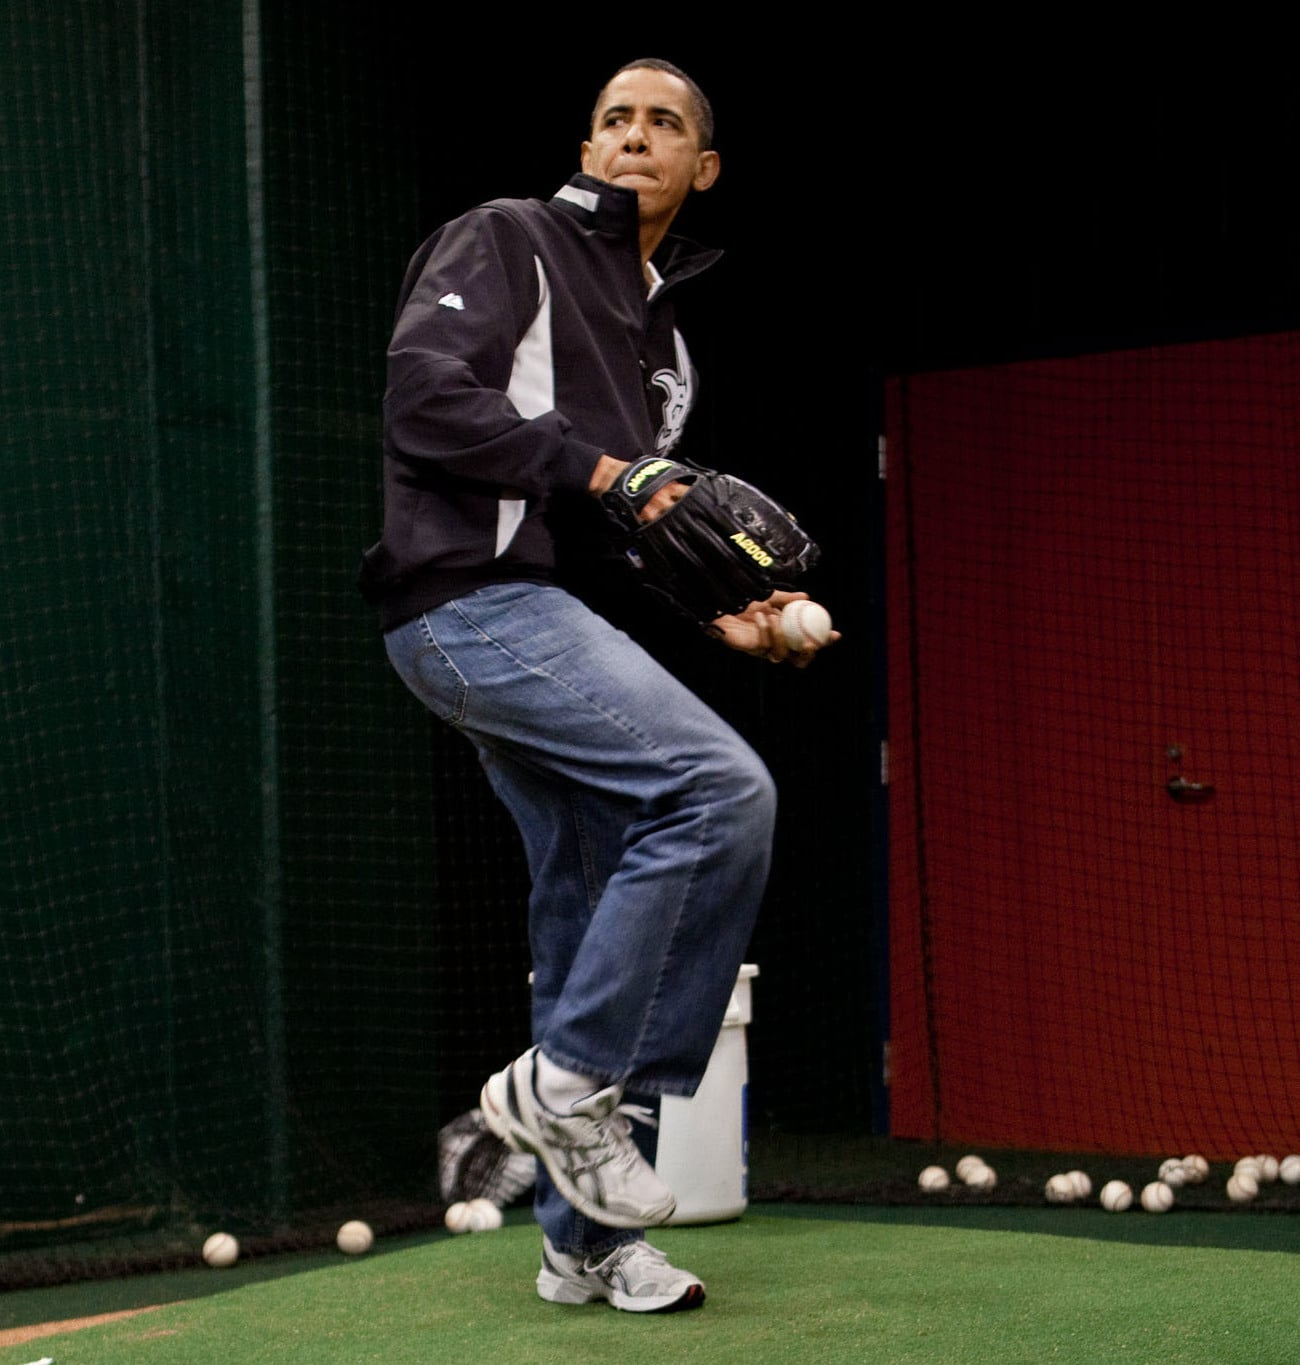 Barack Obama in jeans and sneakers